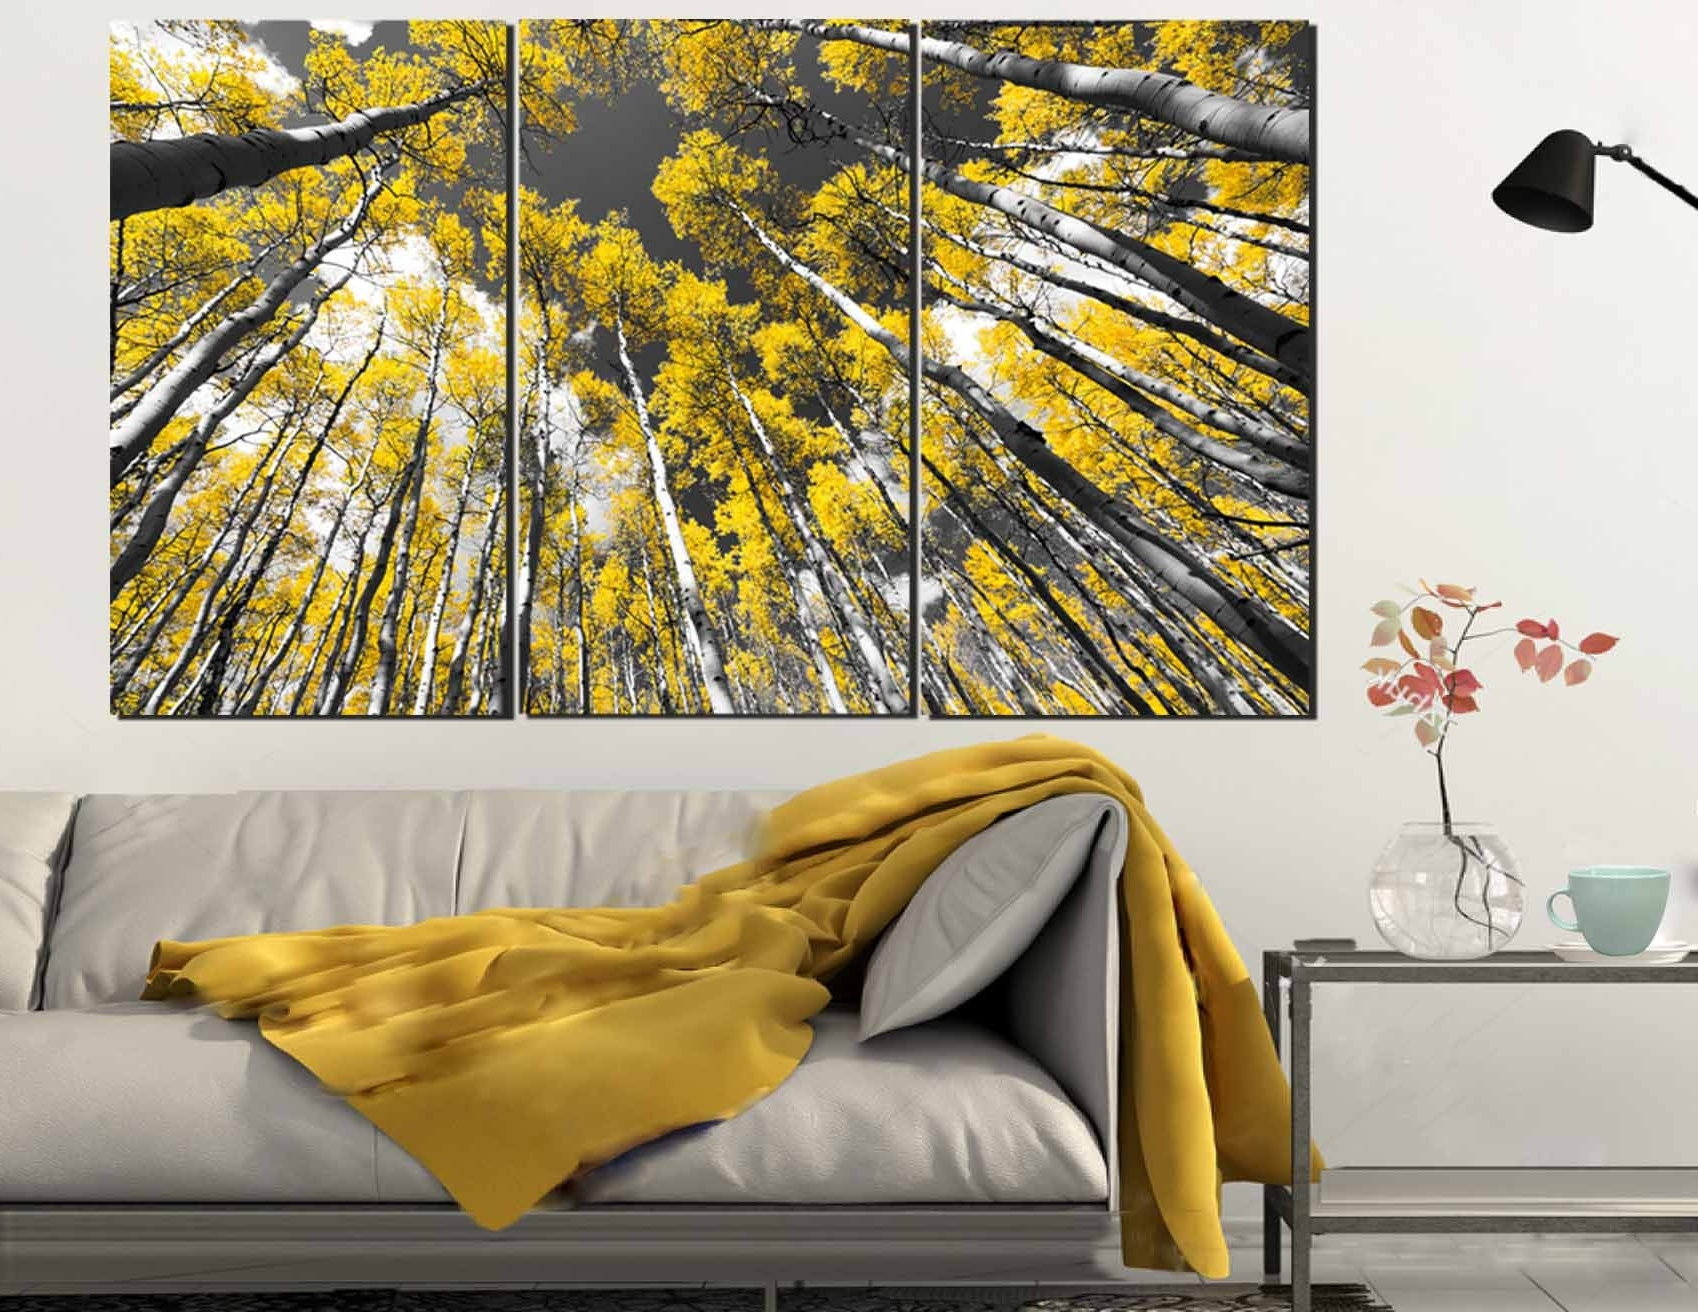 Aspen Tree Wall Art,aspen Tree Art,aspen Tree Canvas Art,aspen Regarding 2018 Aspen Tree Wall Art (View 8 of 15)